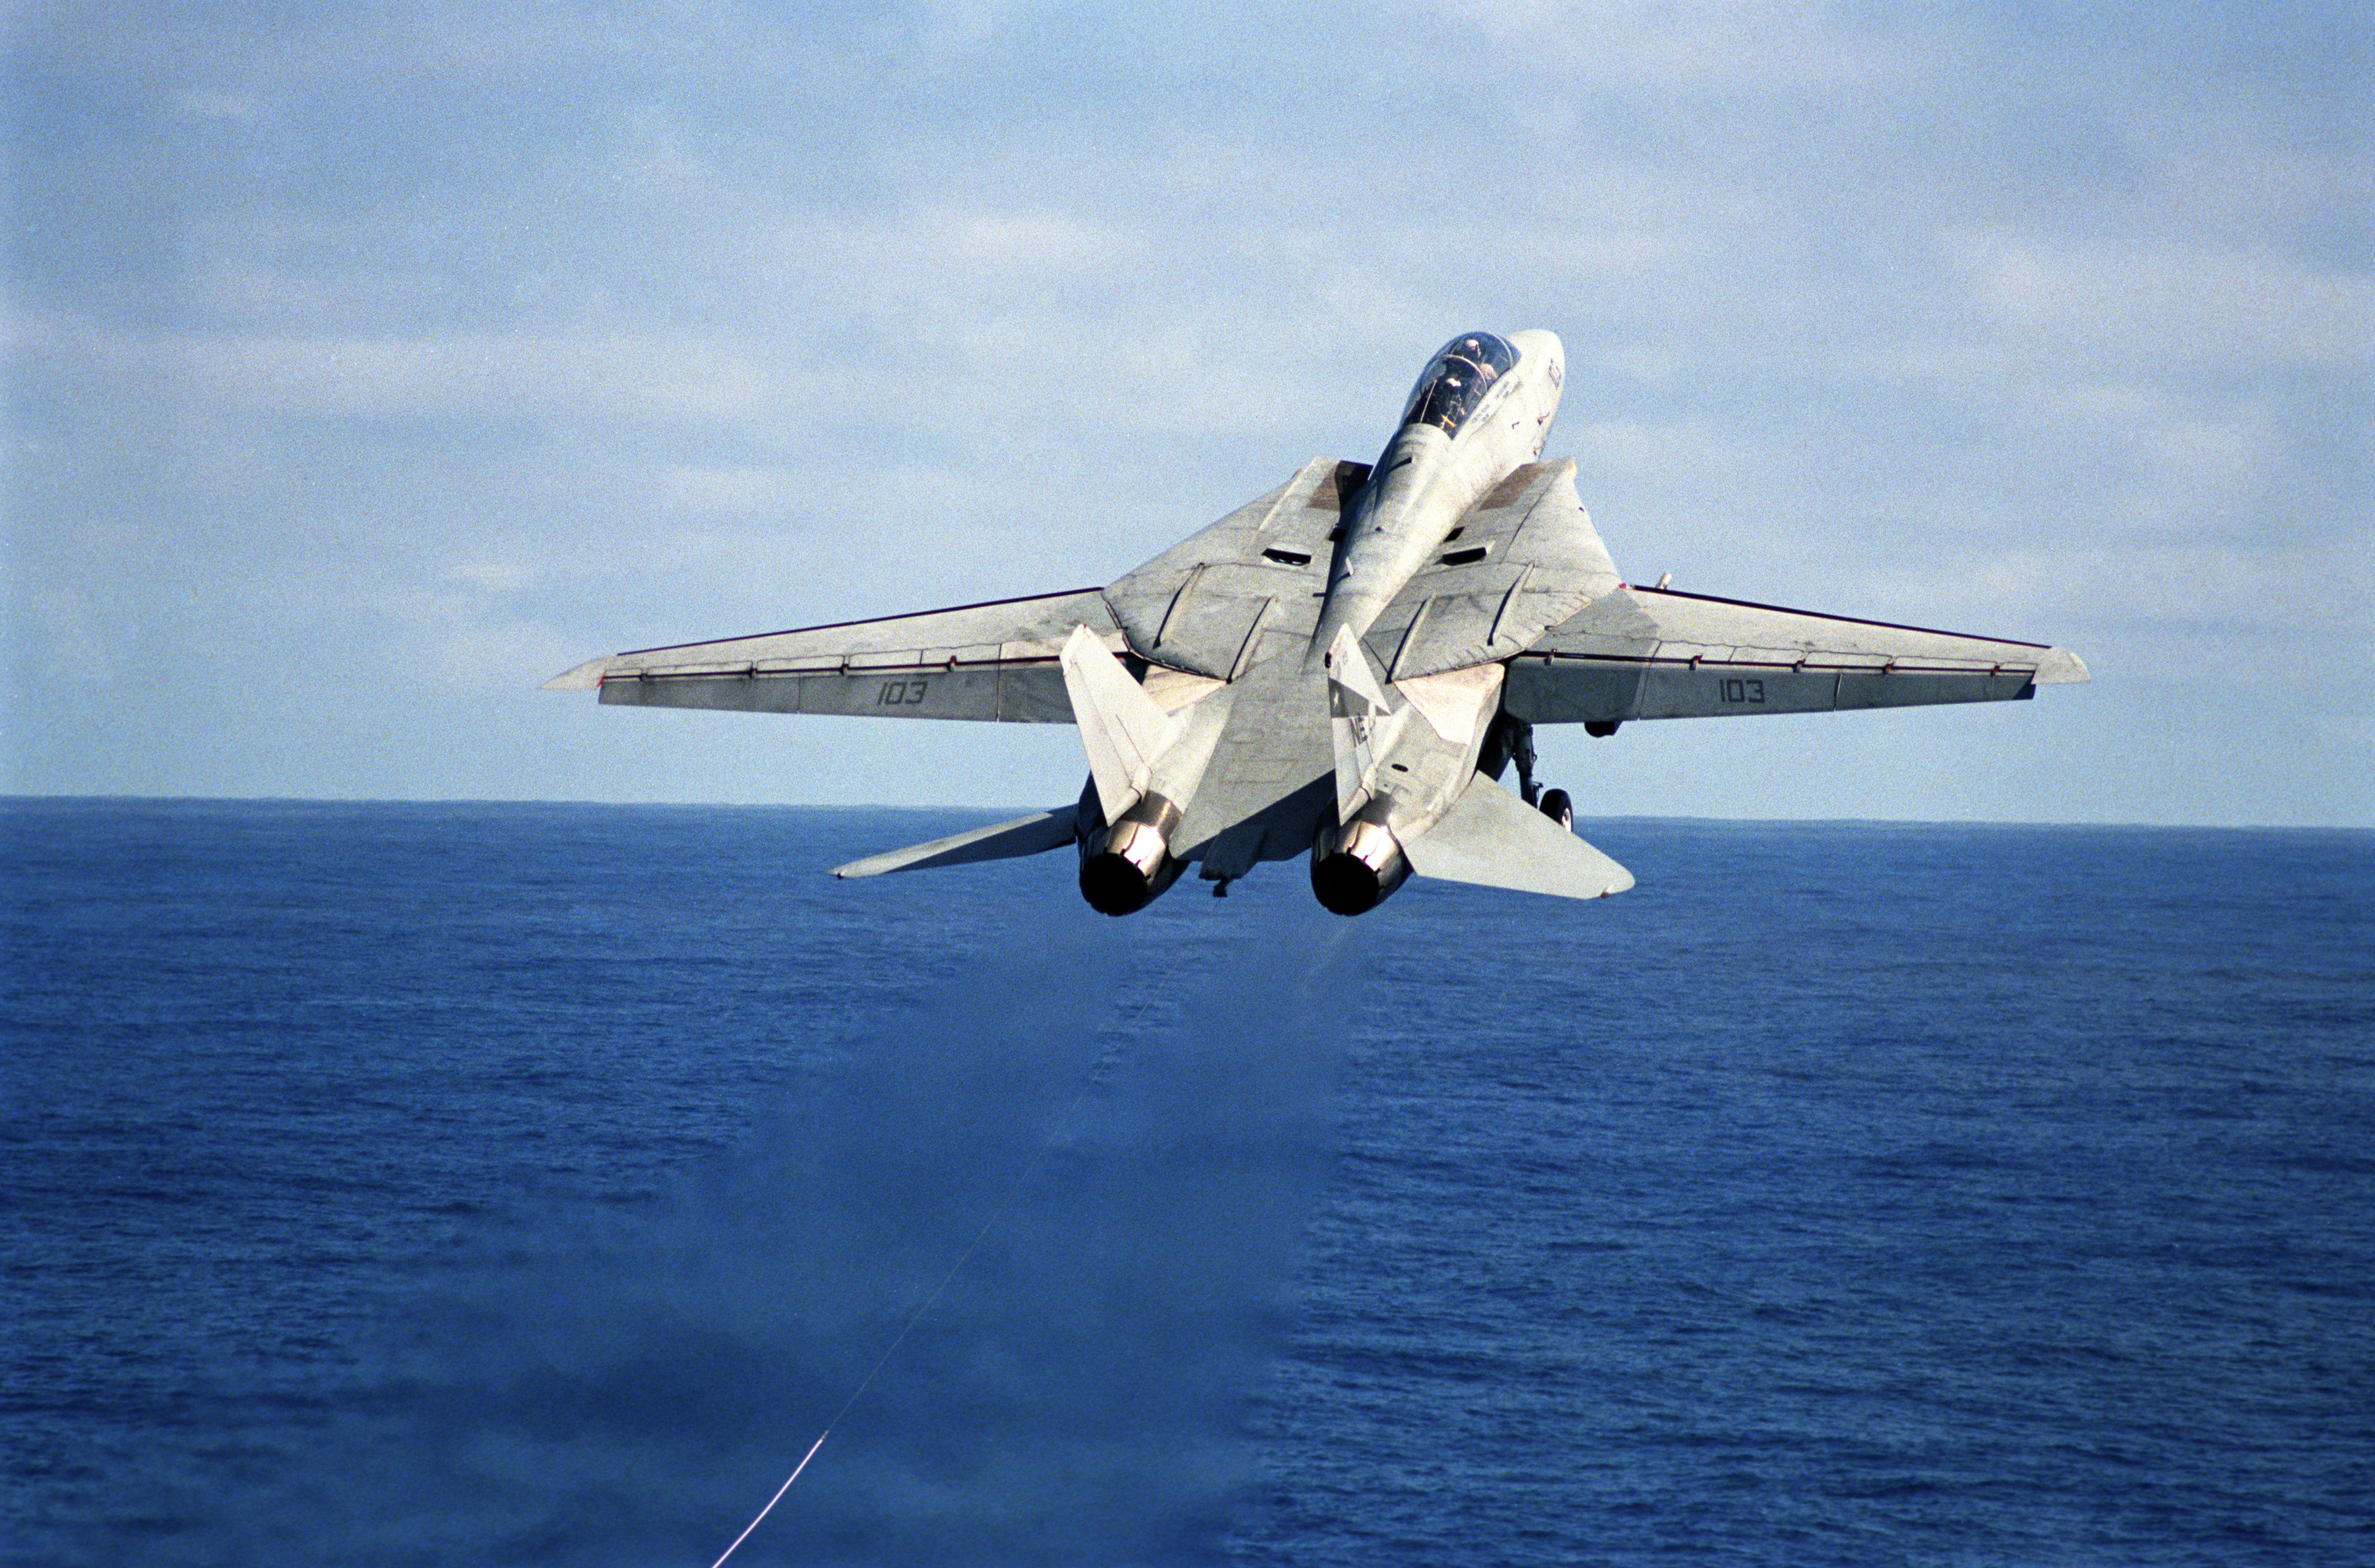 ocean Aircraft seas military HD Wallpaper